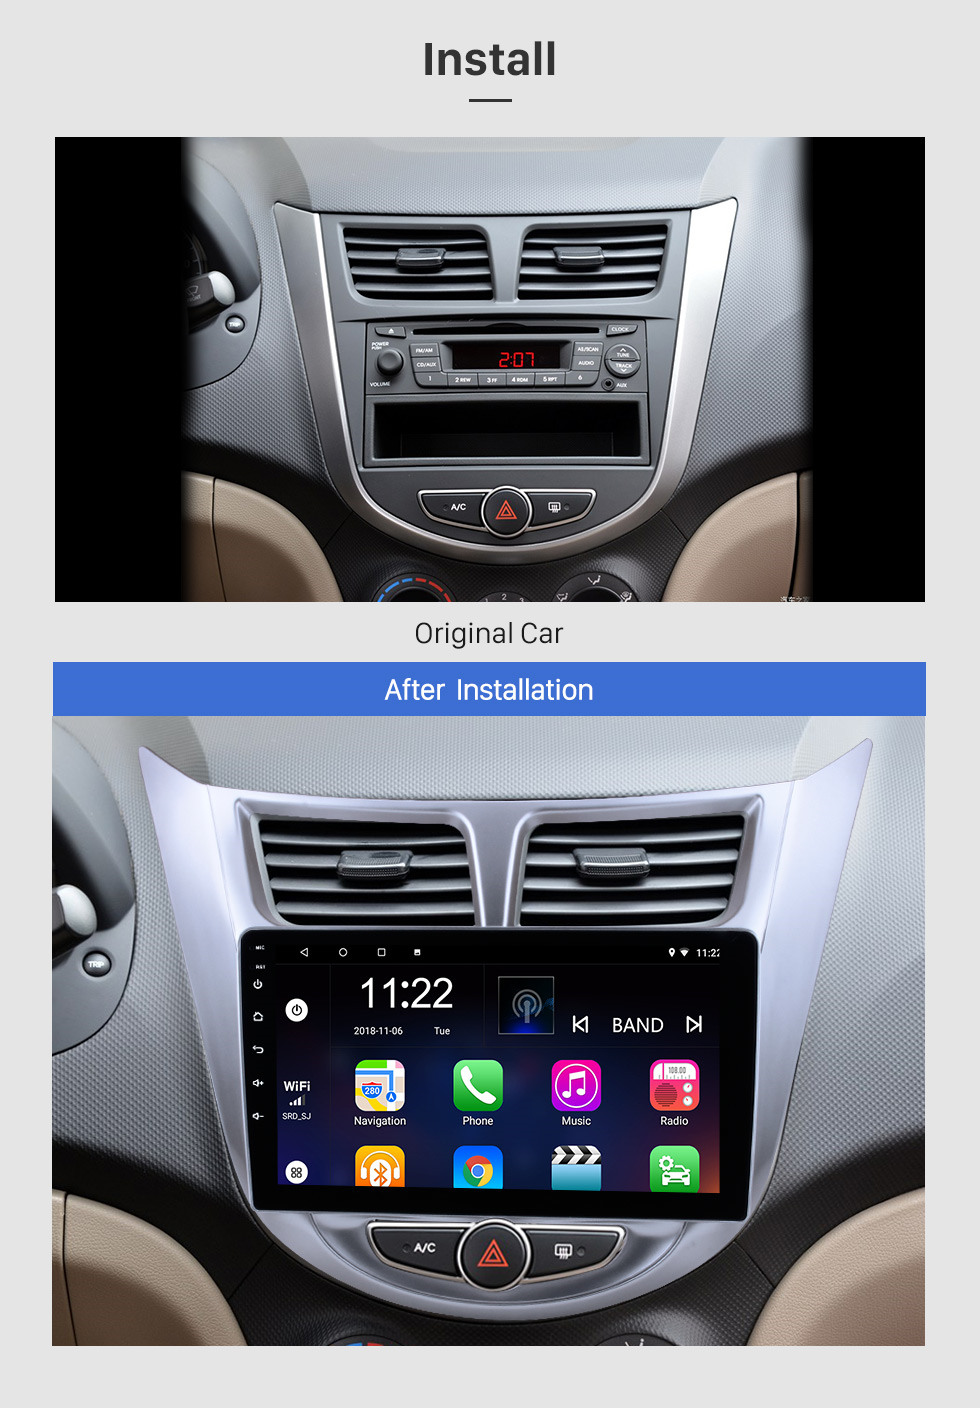 Seicane 9 inch HD 1024*600 Android 10.0 2011 2012 2013 Hyundai Verna Accent Solaris Radio Upgrade GPS Navigation Aftermarket Car Stereo Multi-touch Capacitive Screen Bluetooth Music 3G WiFi Mirror Link OBD2 MP3 MP4